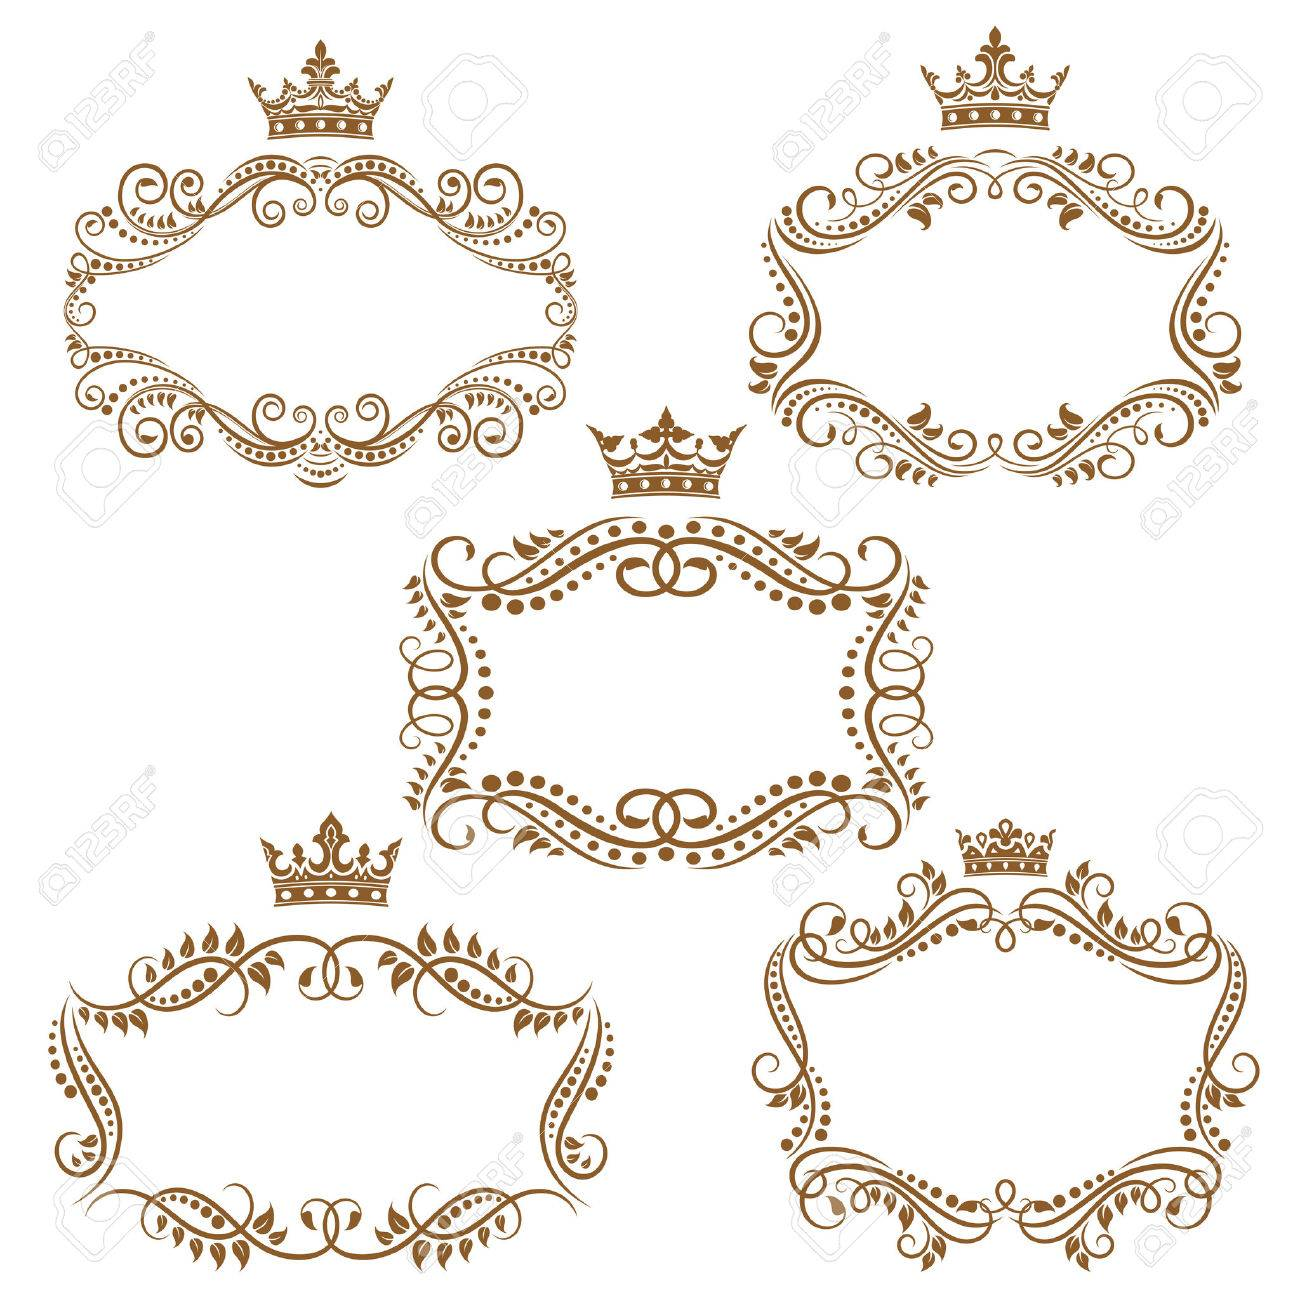 Royal Vintage Brown Borders And Frames Emphasizing The Crown ...